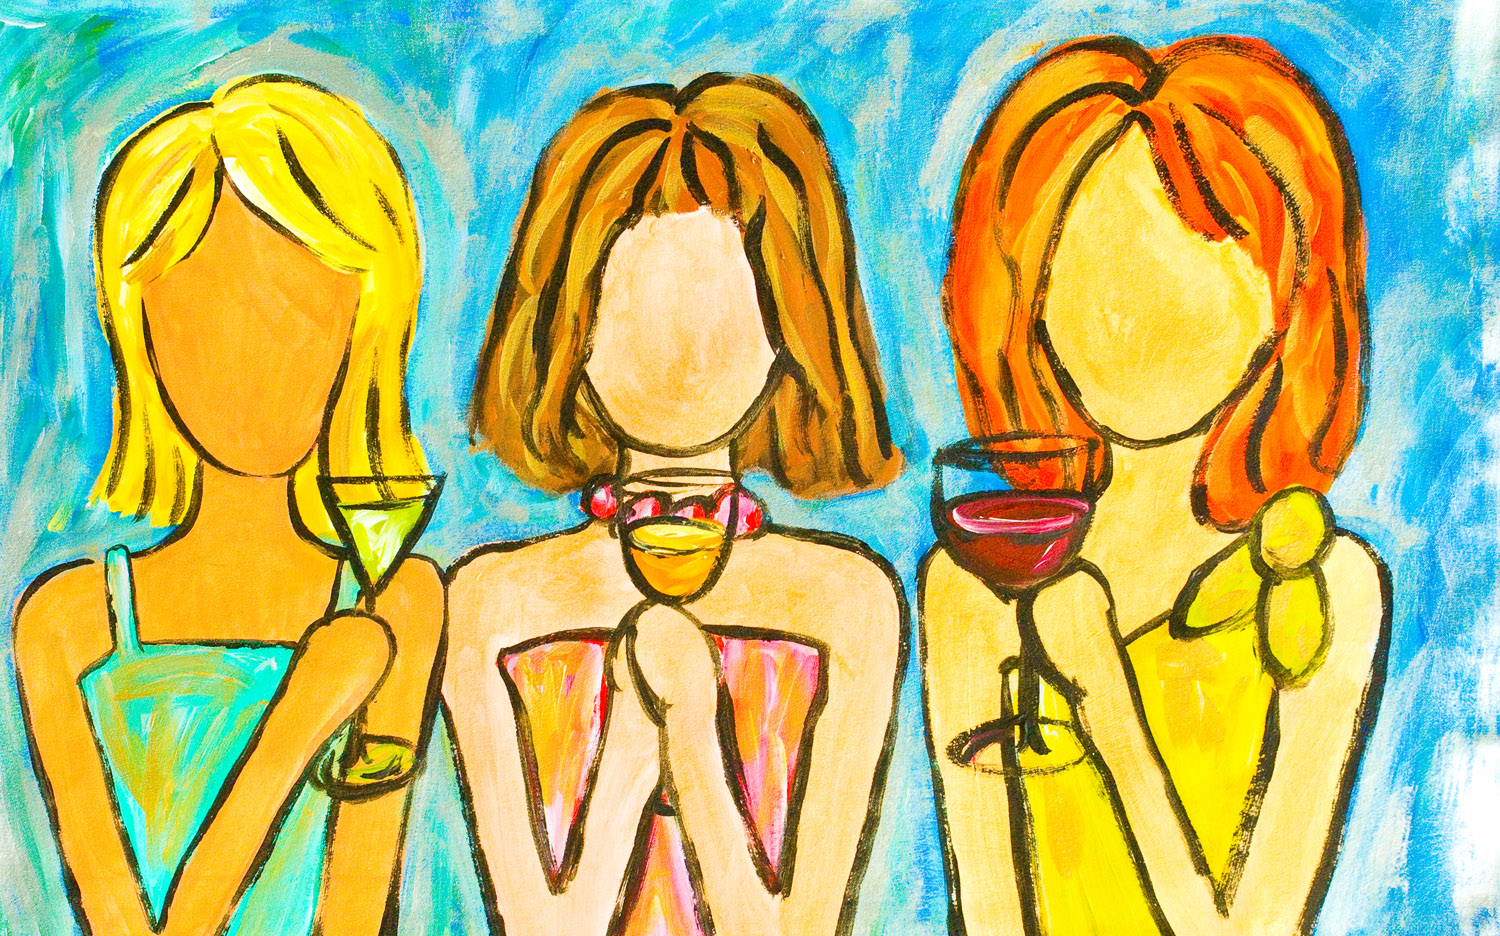 tracey-j-marshall-party-girls-painting_DSC2100.jpg